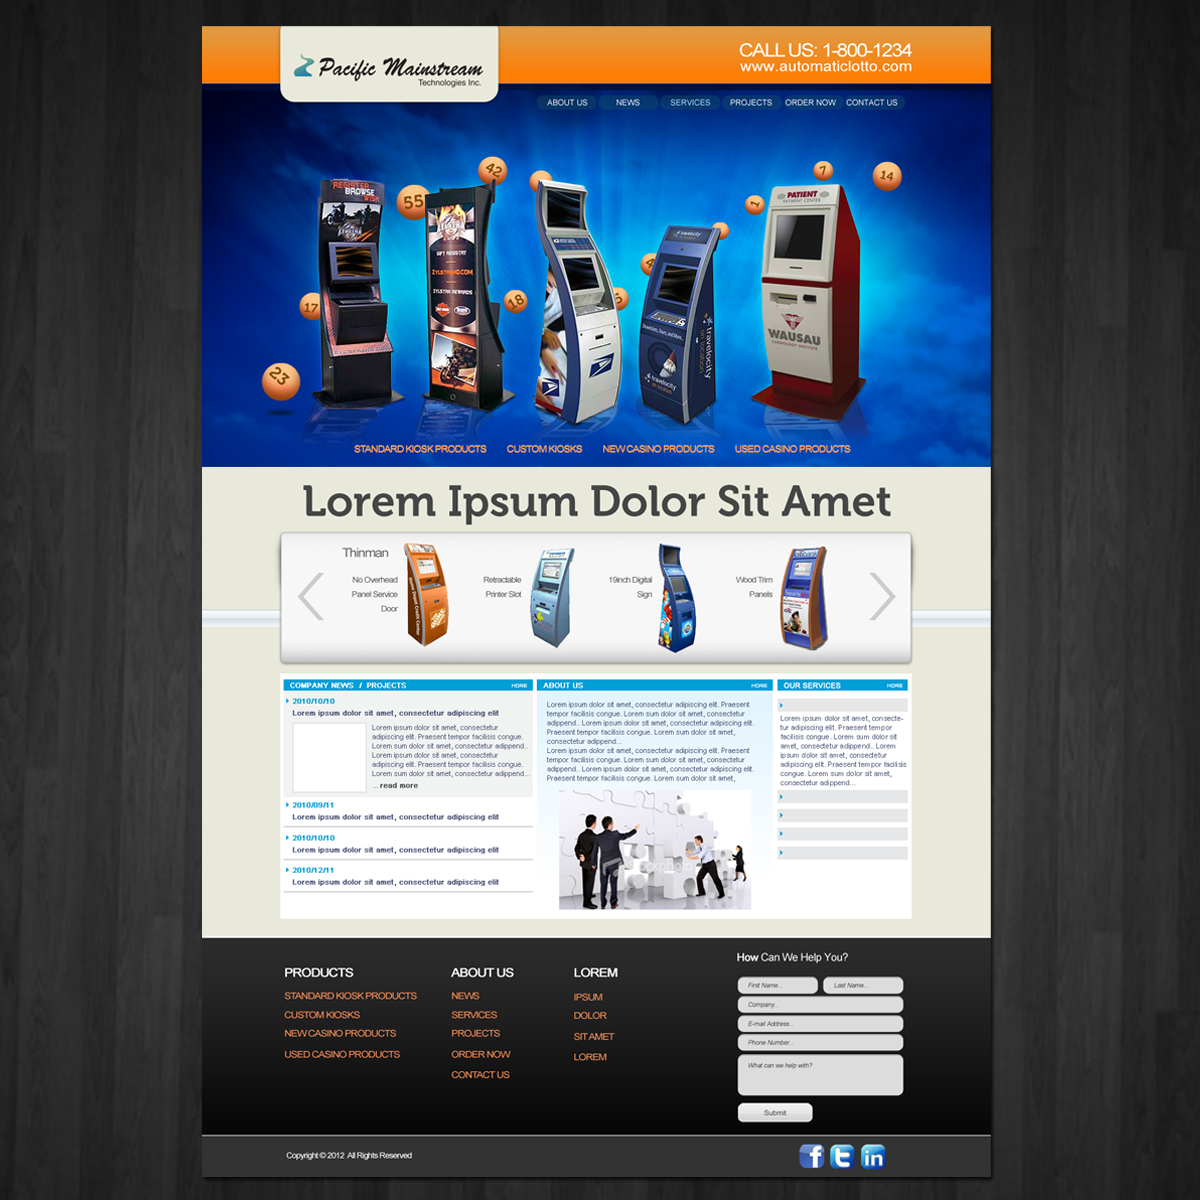 Web Page Design by storm - Entry No. 12 in the Web Page Design Contest Fun Web Page Design for Mainstream Pacific Technologies Inc..